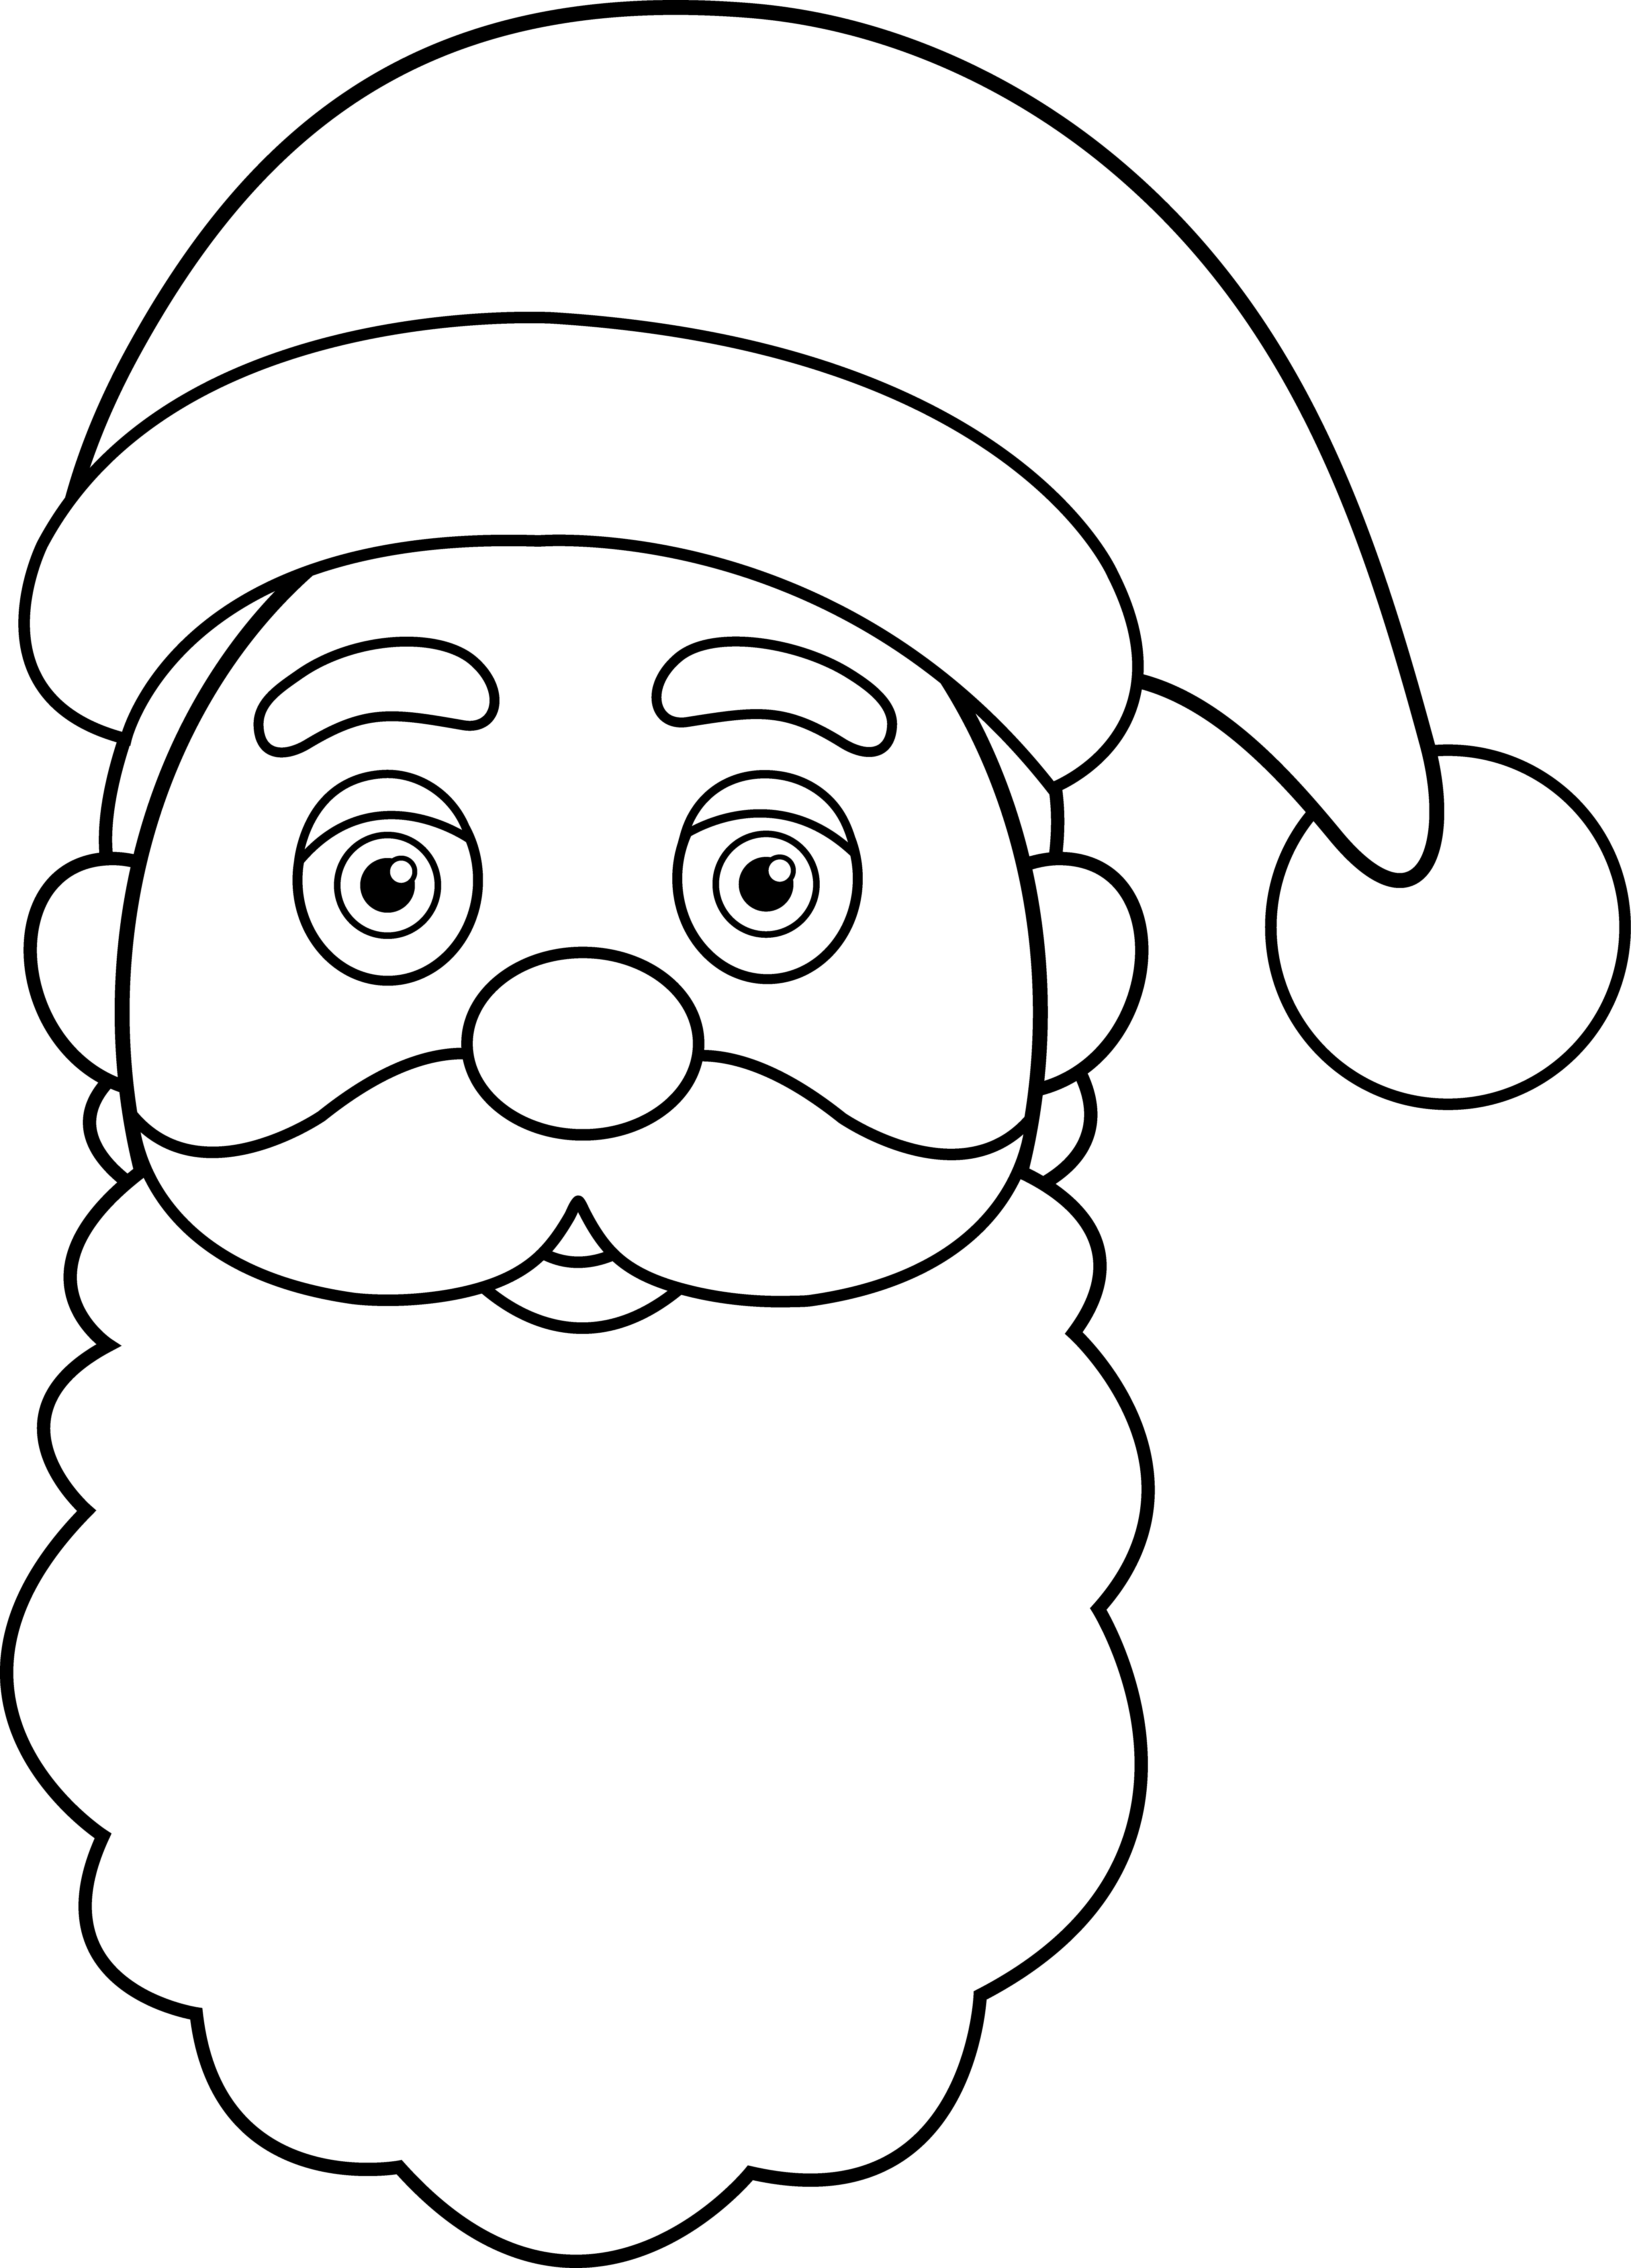 Head Clipart Santa Claus Head Santa Claus Transparent